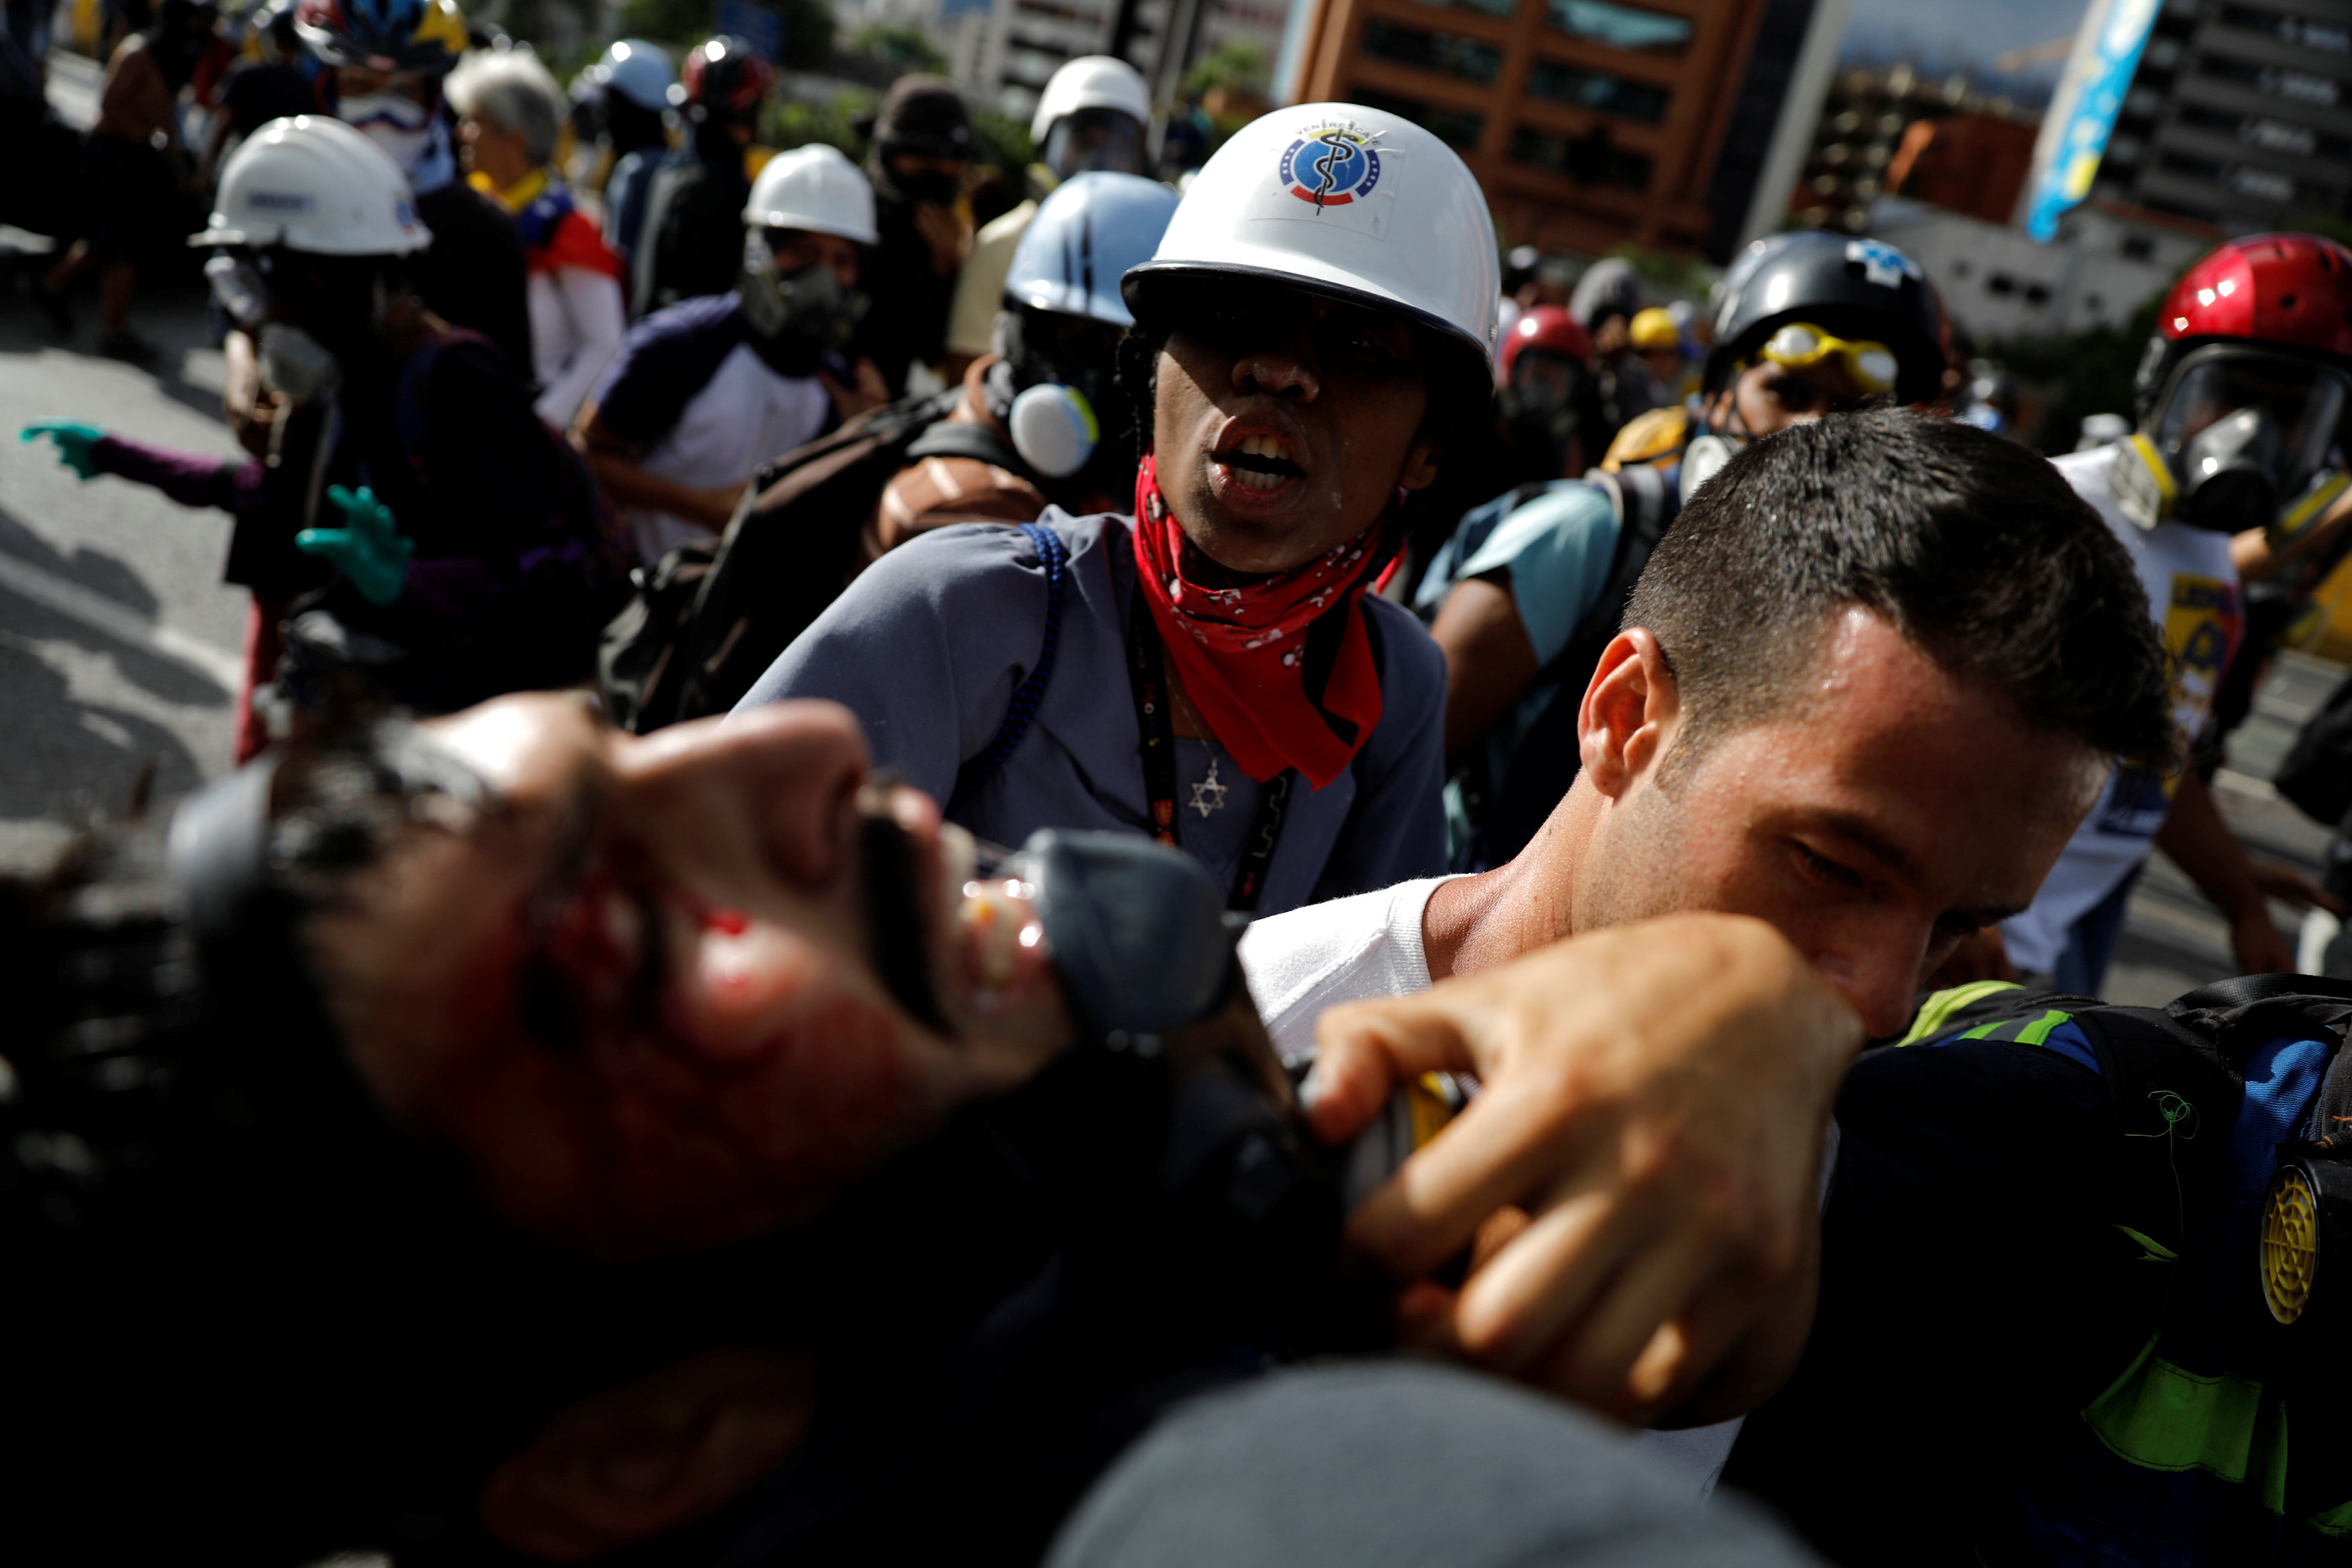 ATTENTION EDITORS - VISUALS COVERAGE OF SCENES OF DEATH OR INJURY A person reacts as an injured demonstrator is helped by others during a rally against Venezuela's President Nicolas Maduro in Caracas, Venezuela, June 10, 2017. REUTERS/Carlos Garcia Rawlins